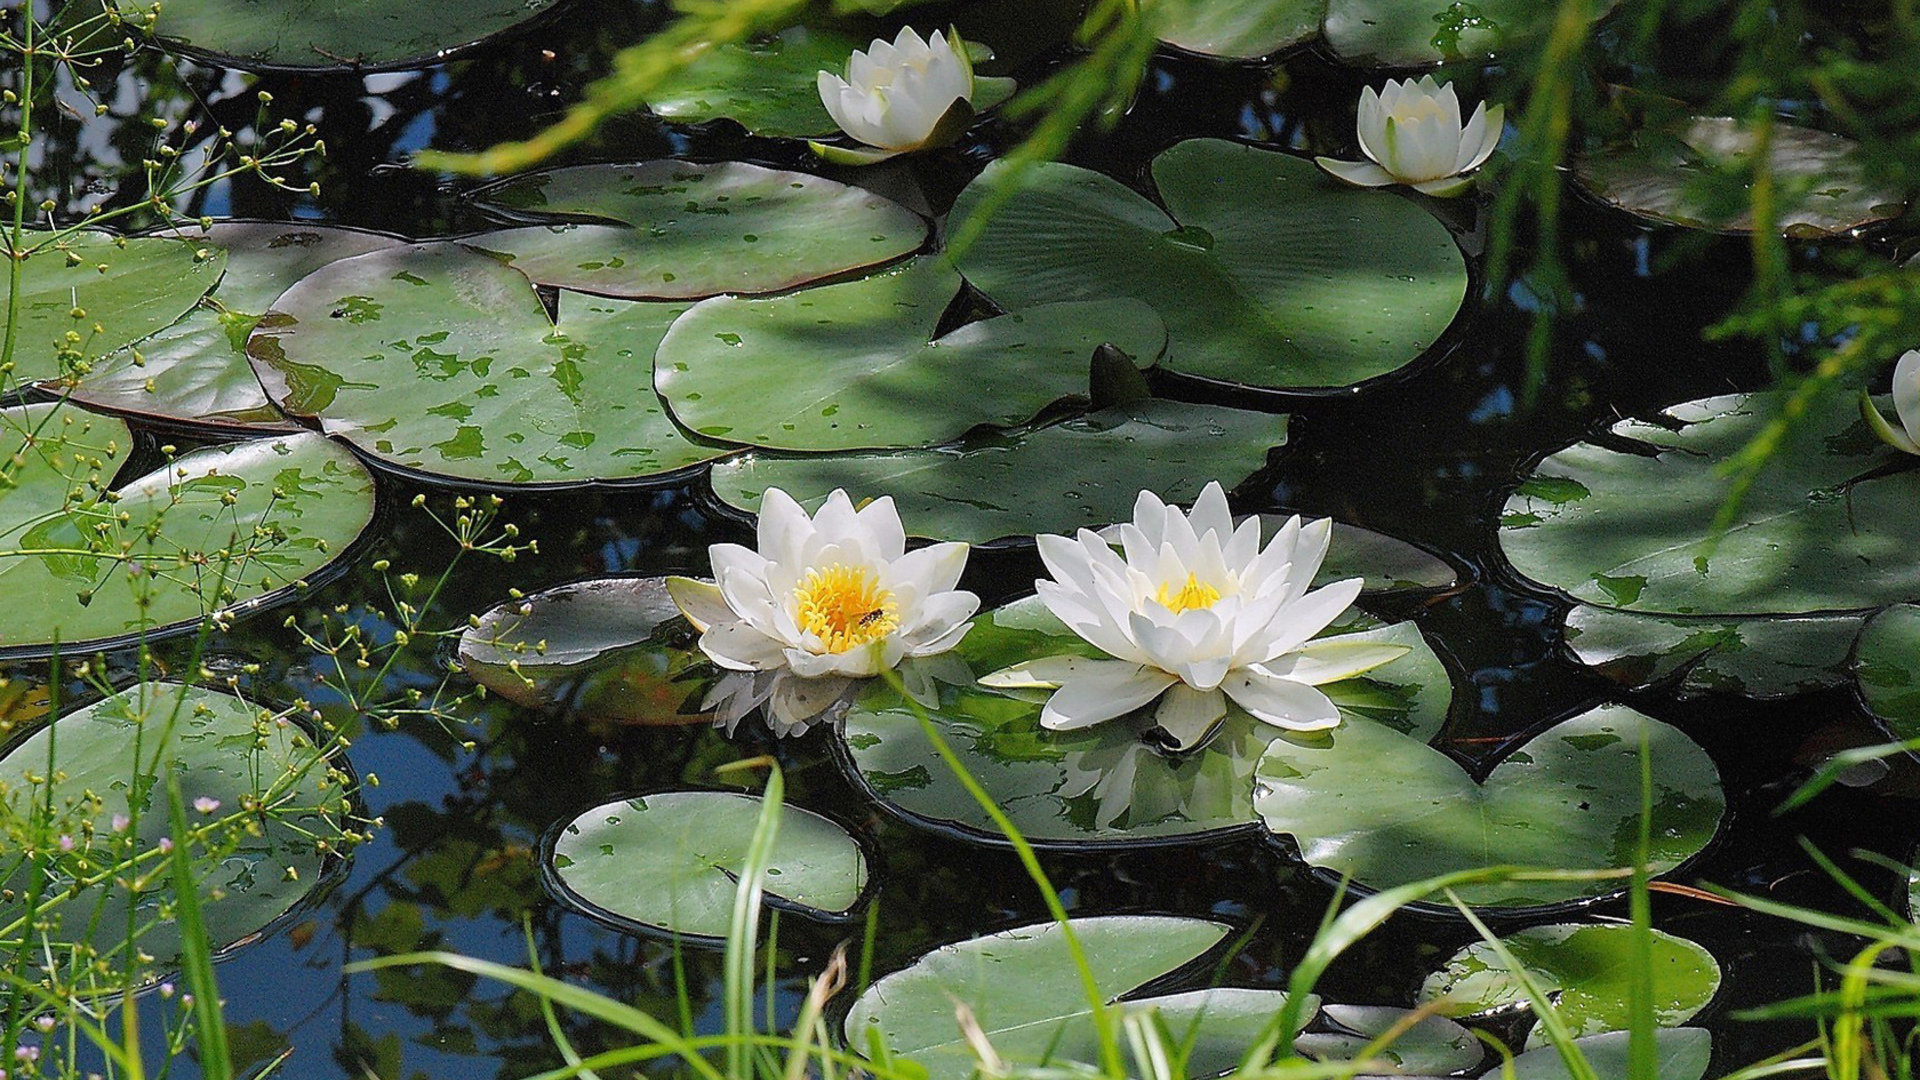 Download full hd 1920x1080 Water Lily PC wallpaper ID:366187 for free